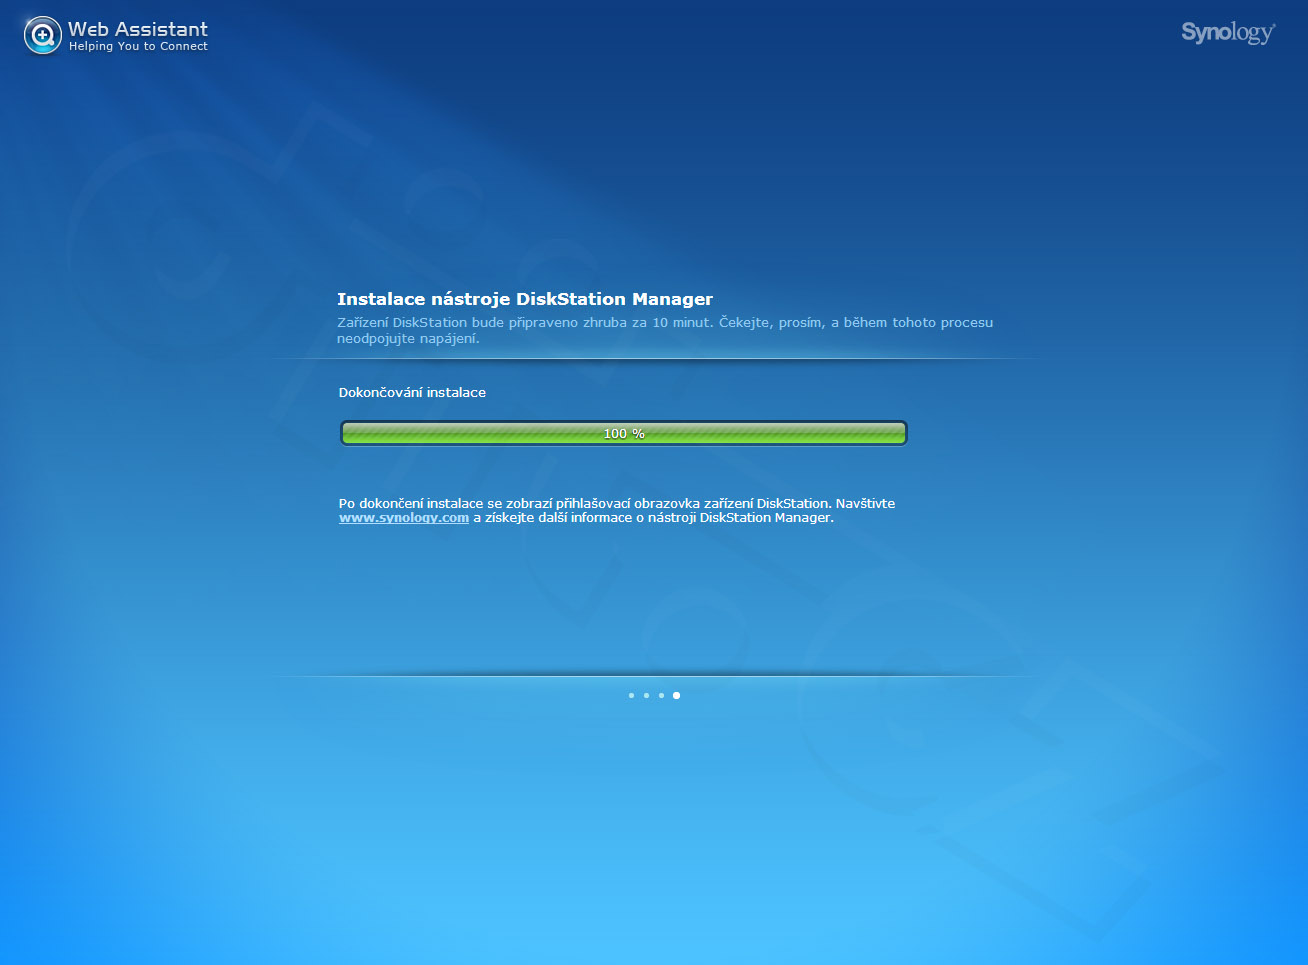 Synology web assistant